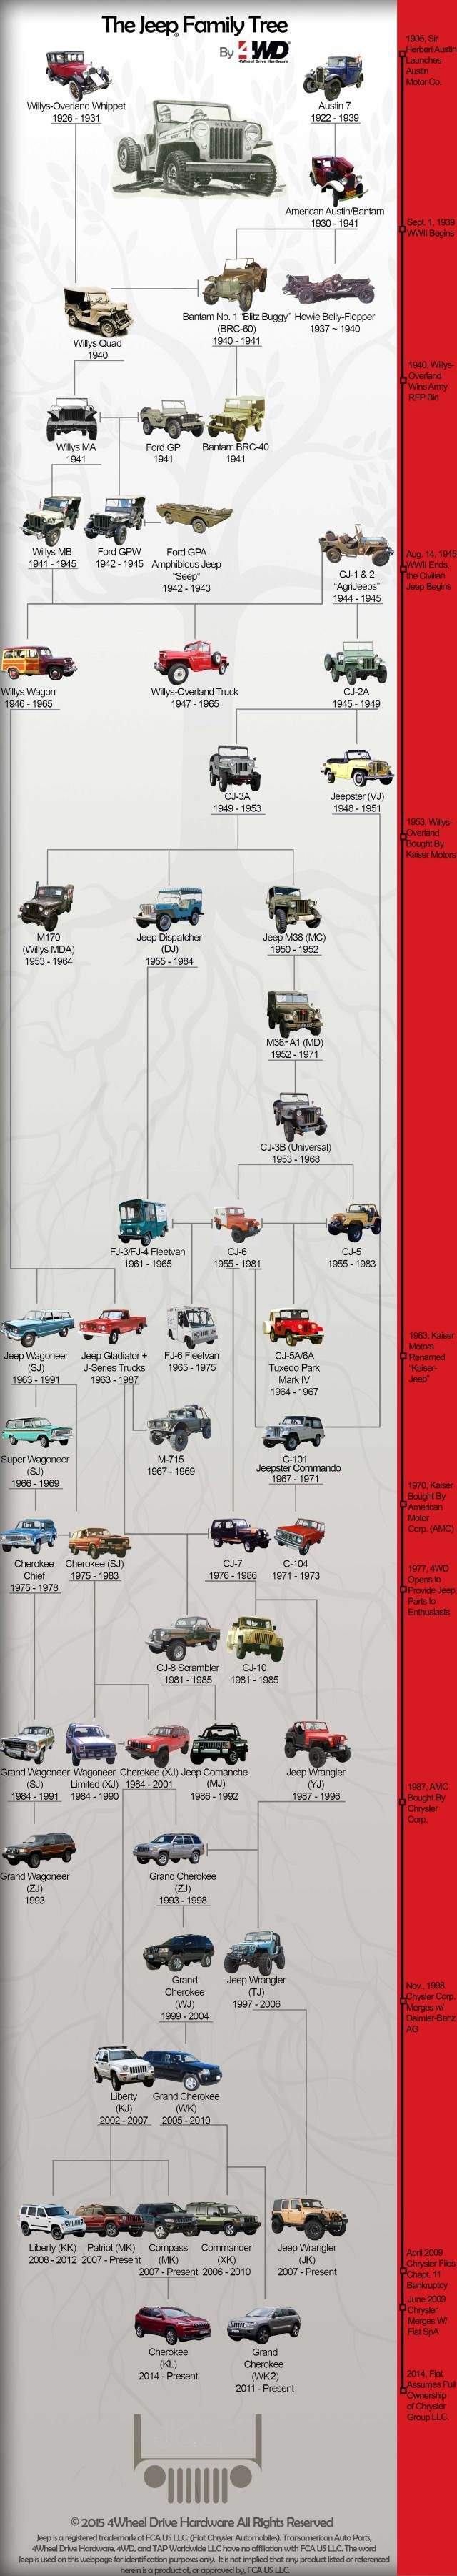 Americas Favorite Off Road Family The Jeep Tree From 4wd 1977 Cj7 Engine Diagram By 4wheel Drive Hardware Your Parts Resource